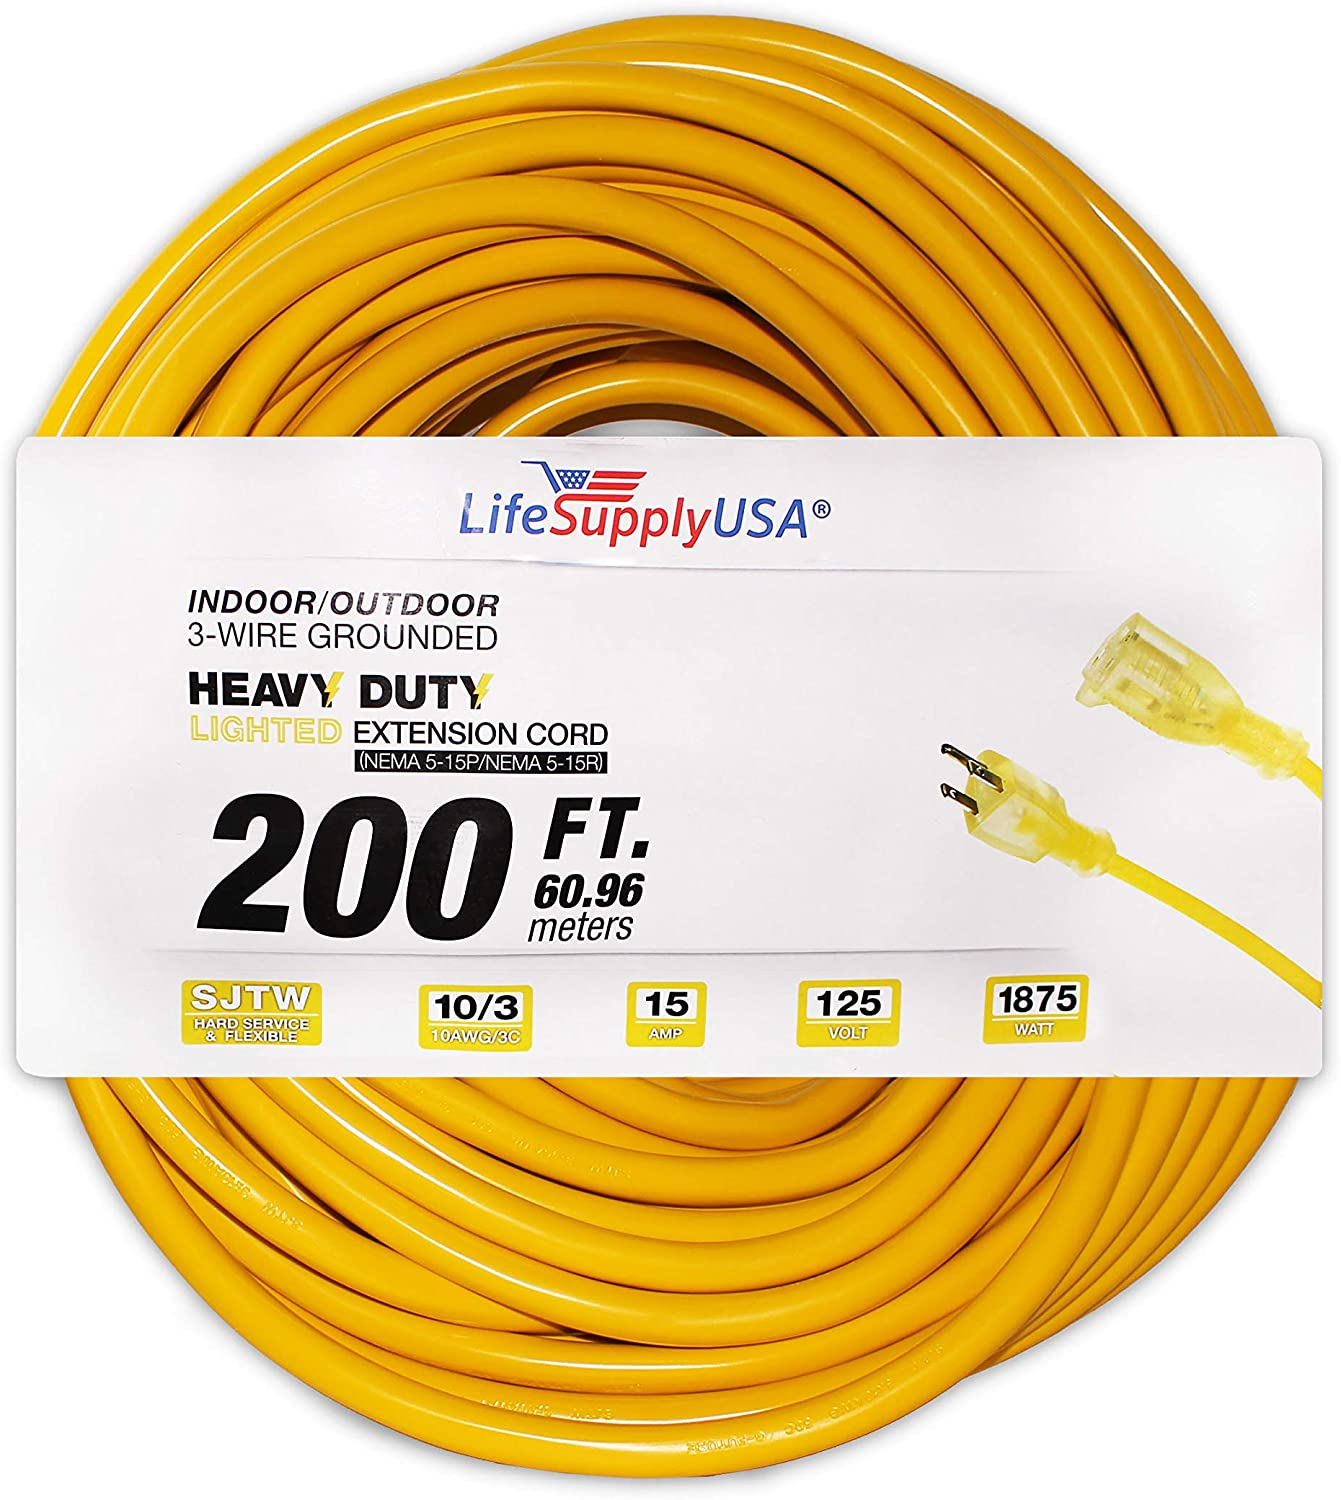 LifeSupplyUSA 10 Pack - 10/3 200 ft SJT Lighted End Extension Cord 15 Amp, 300 Volt, 1875 Watt, Super Heavy Duty Outdoor Jacket (200 feet)